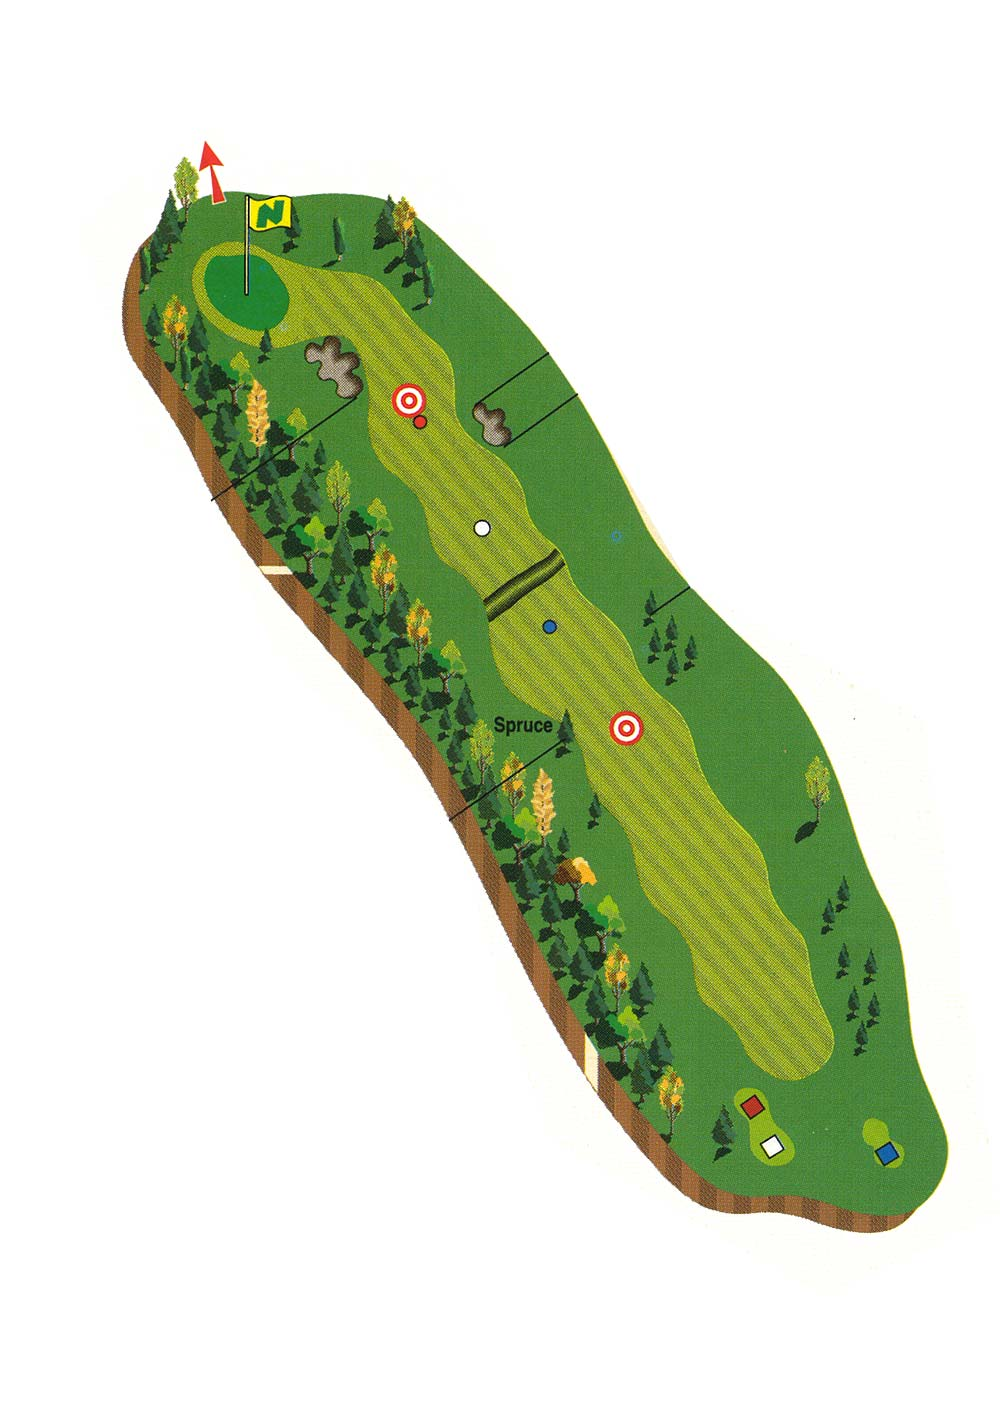 Course Description - Hole 11